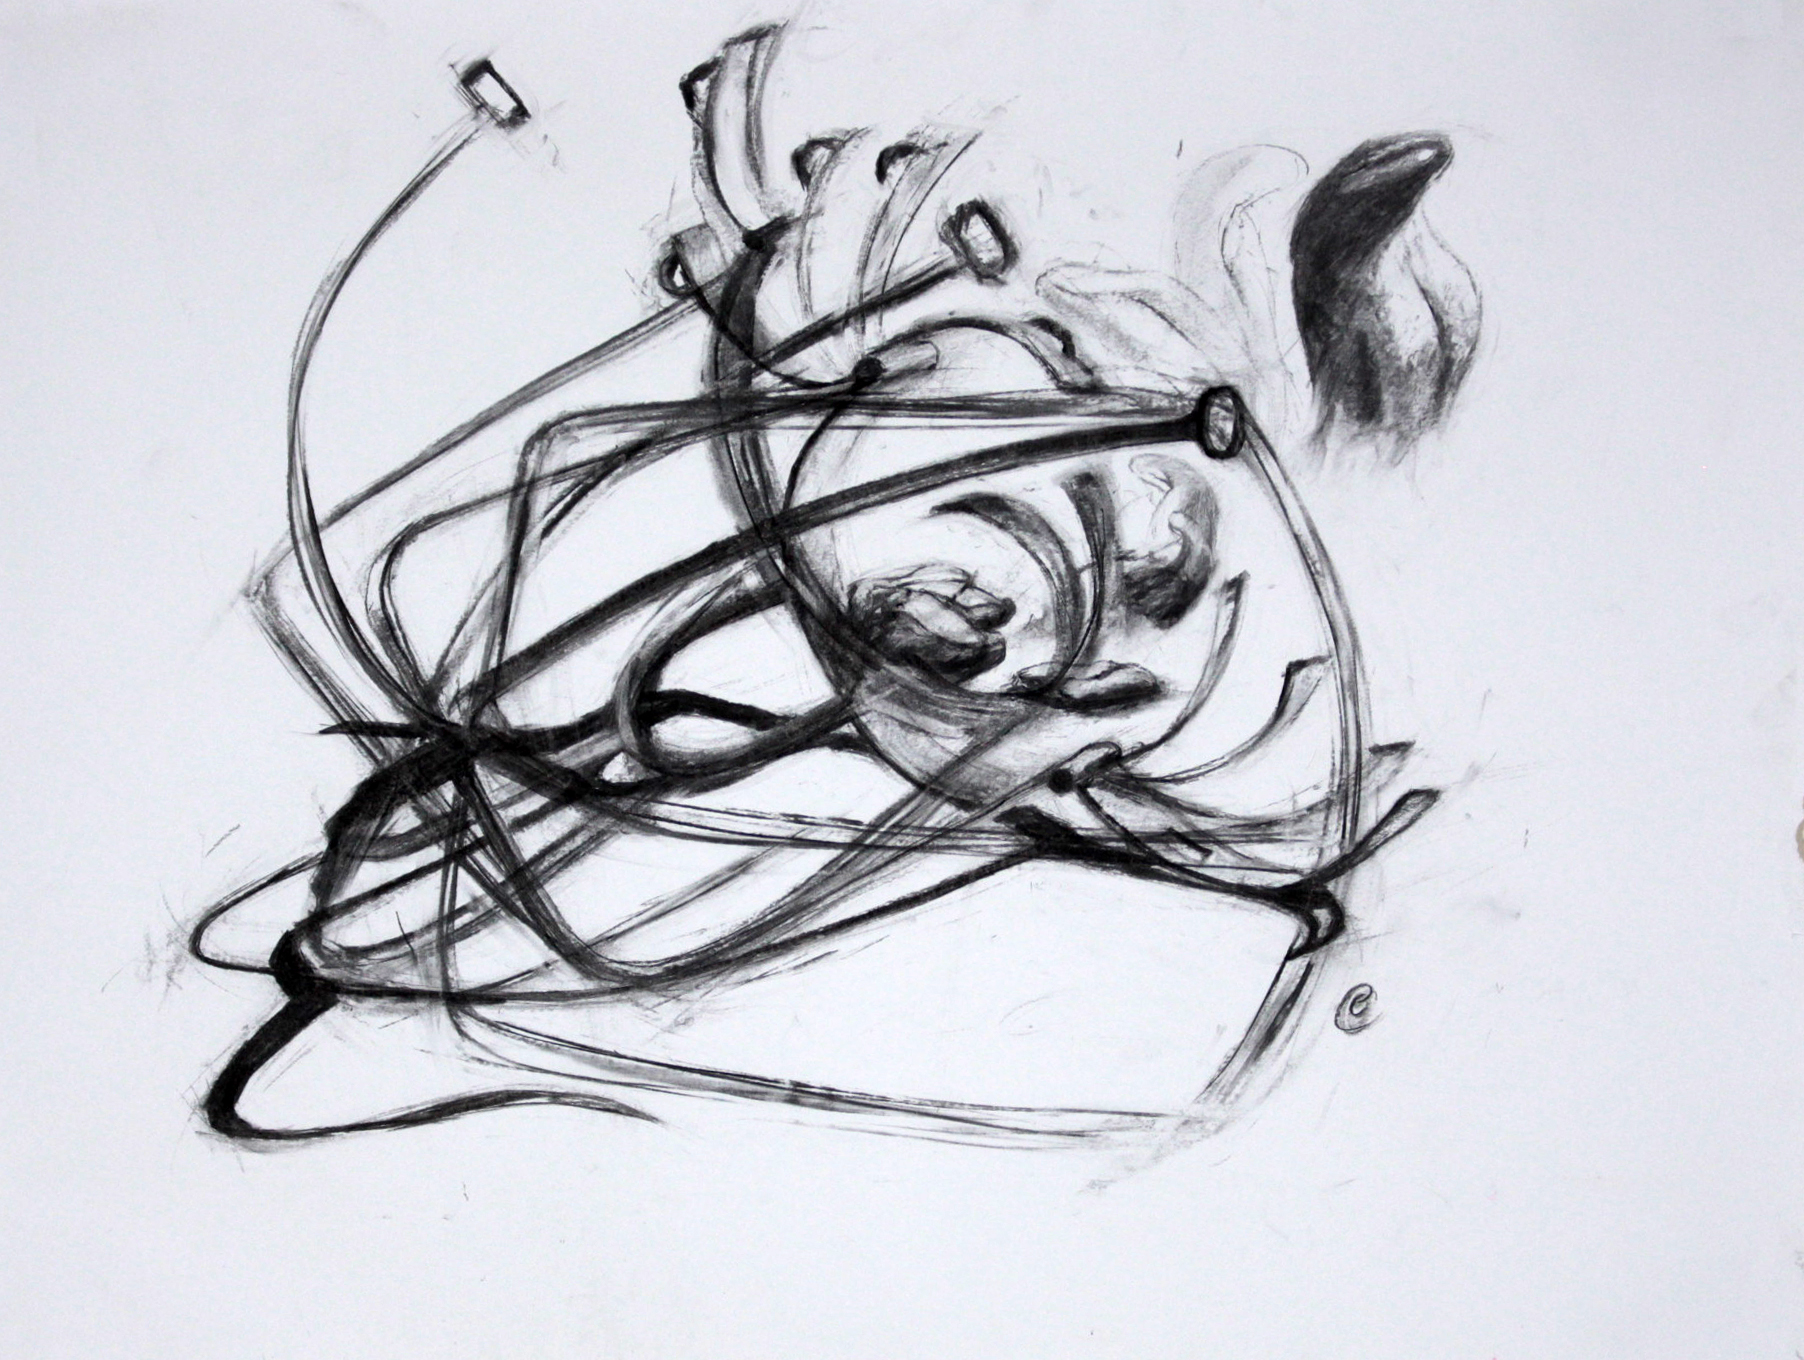 charcoal drawing of scold's bridle, brank and tongue